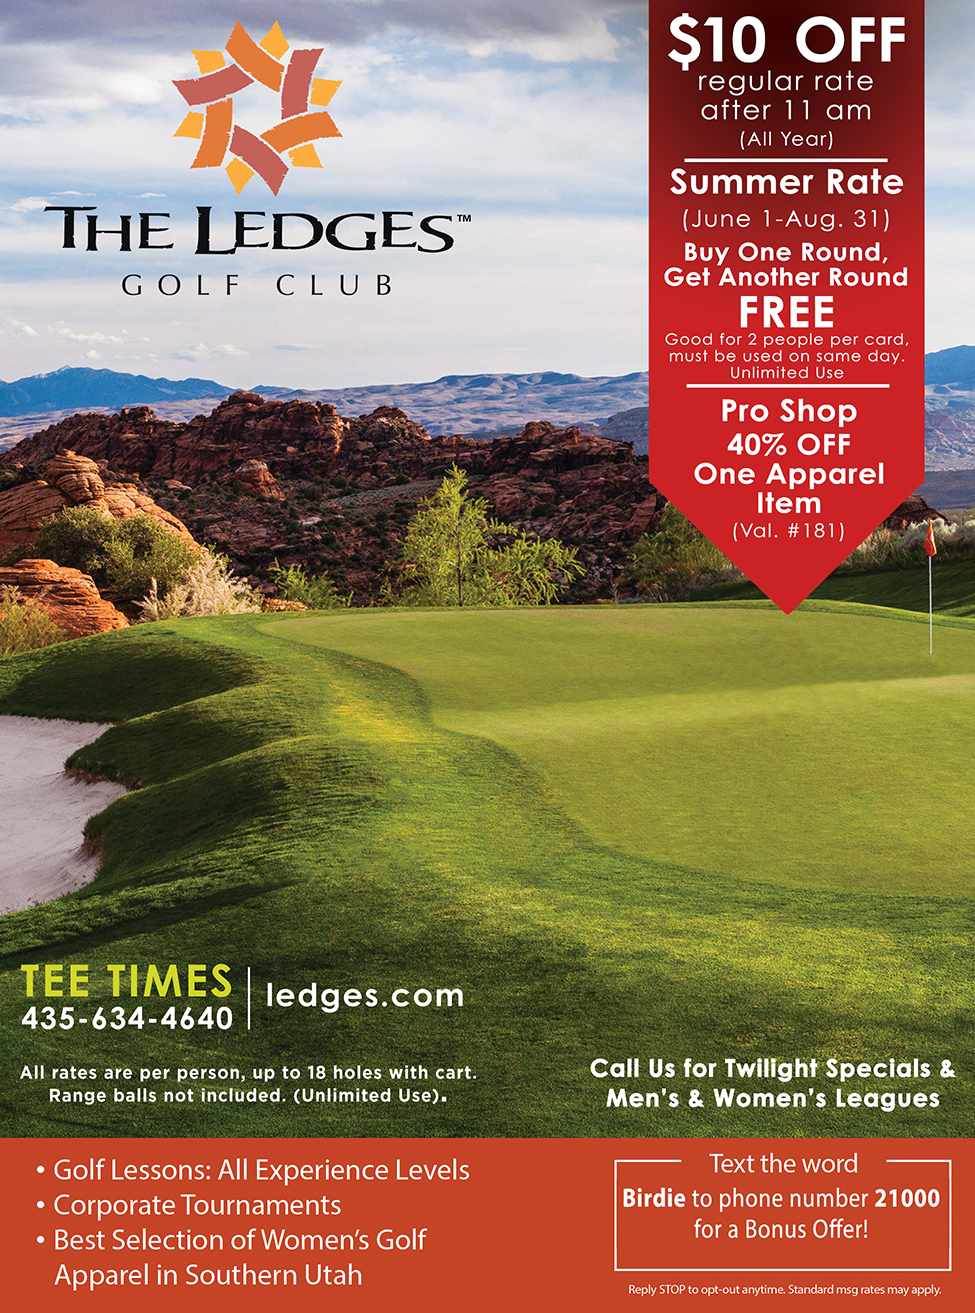 The Ledges Golf Club